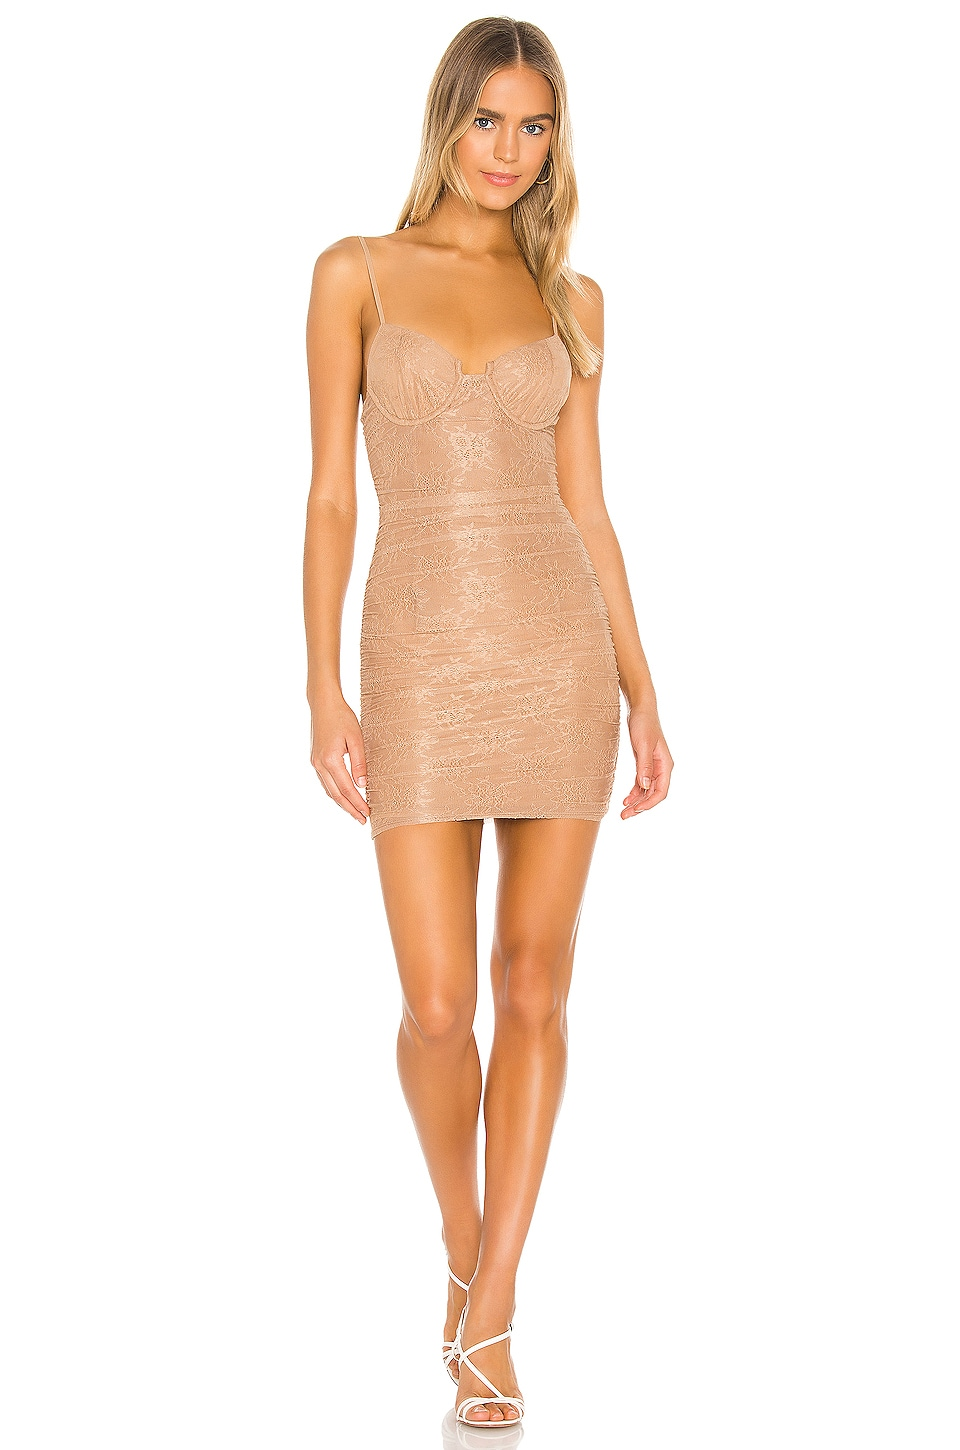 Sierra Mini Dress             Camila Coelho                                                                                                       CA$ 259.13 3